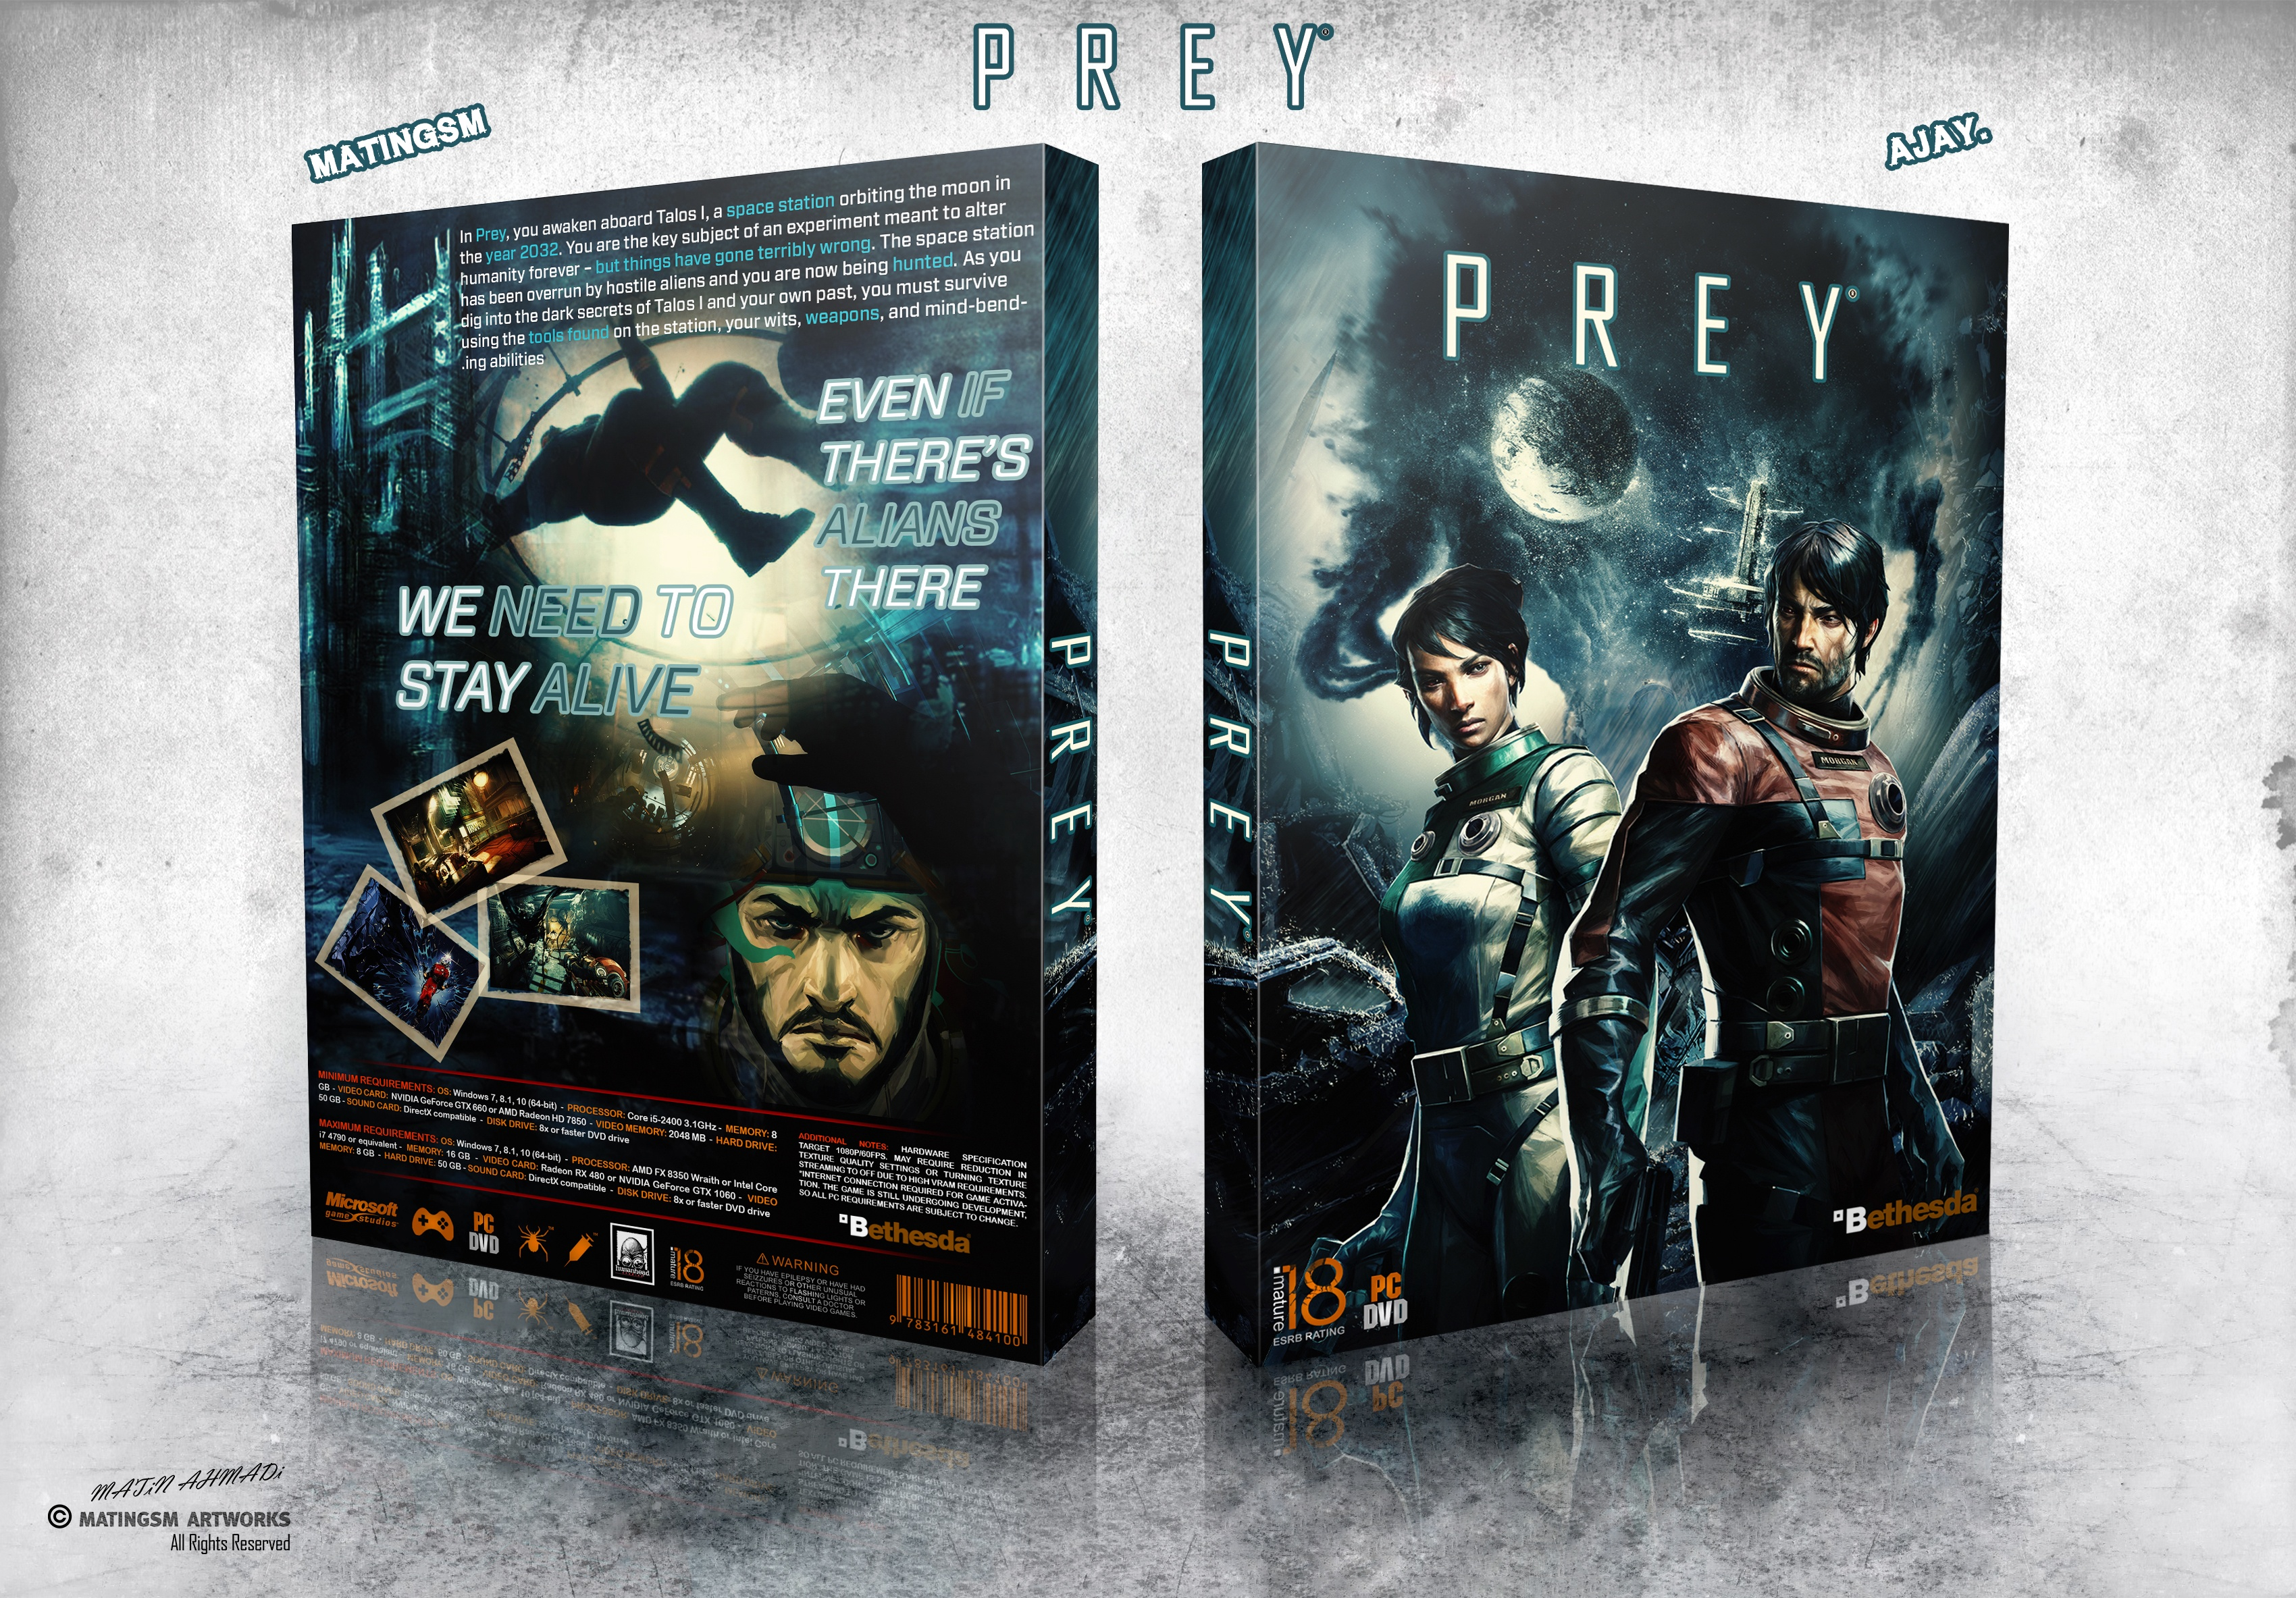 Prey box cover